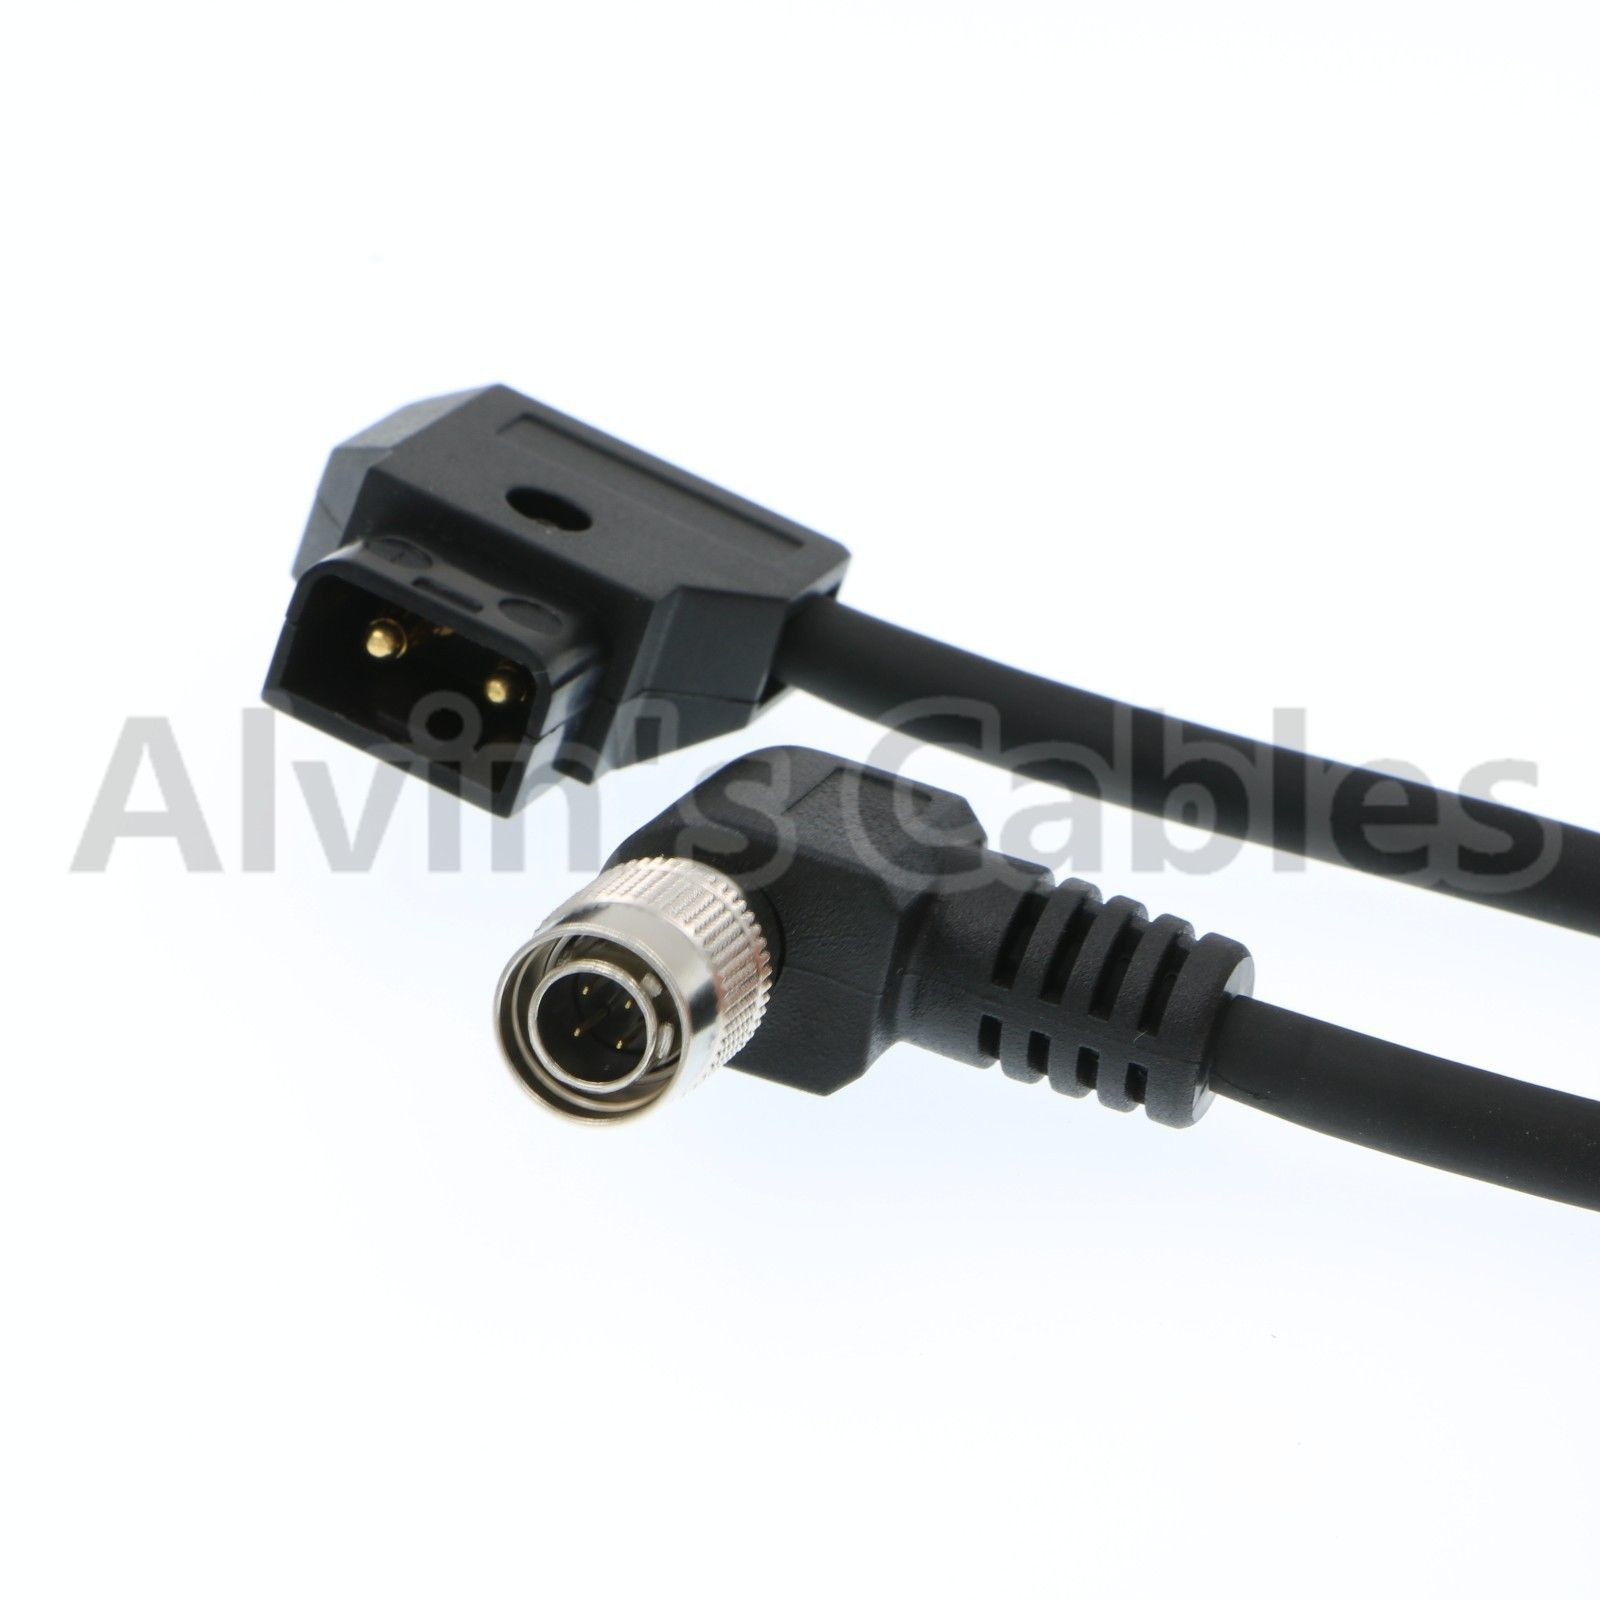 7-Foot PowerTap to Hirose 4-Pin Female DC Power Cable